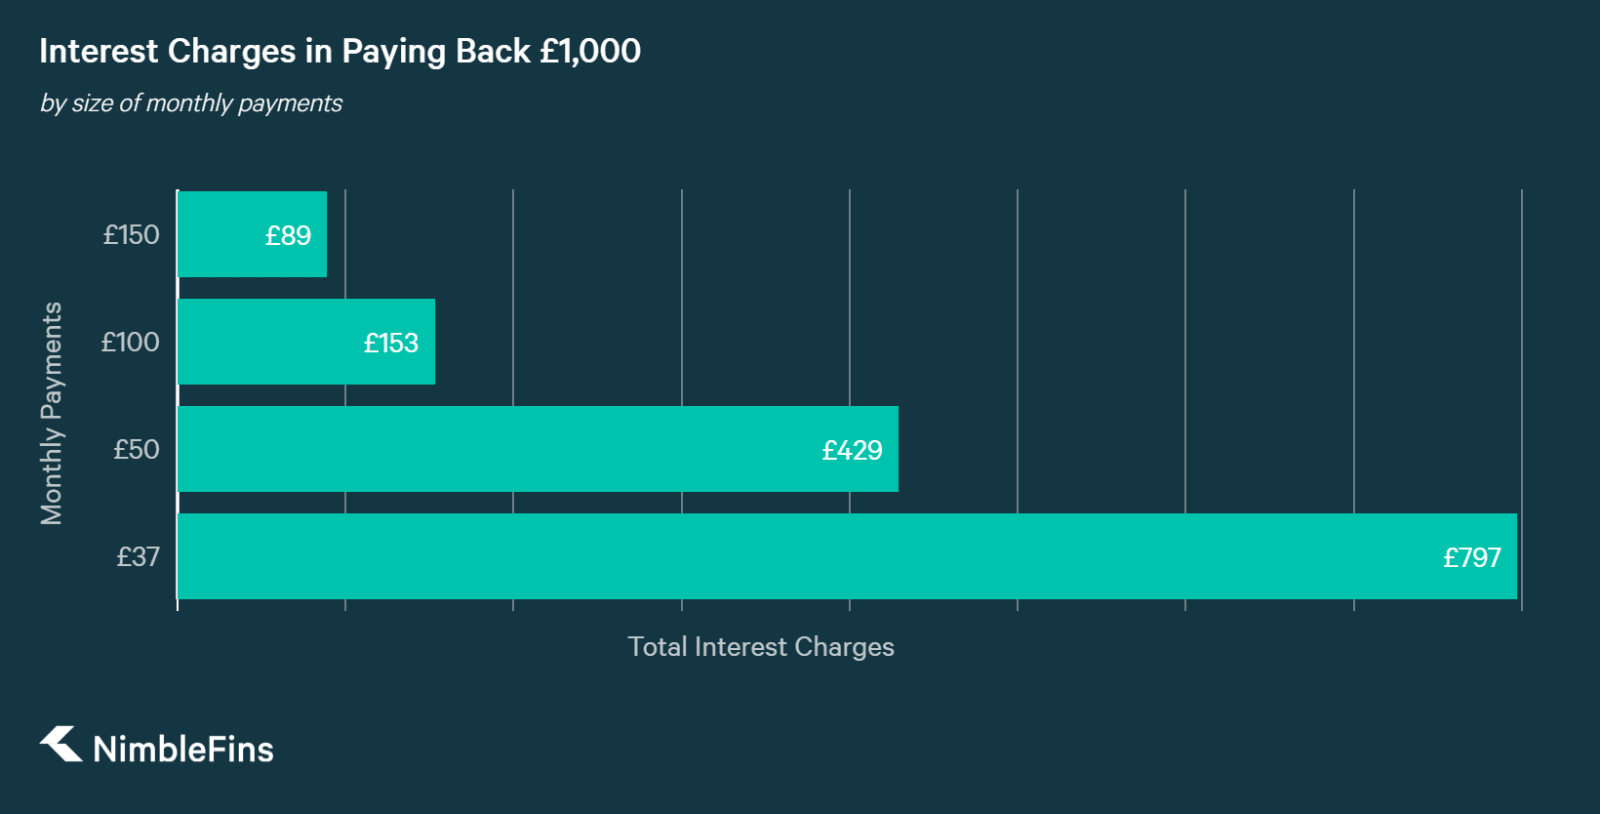 chart showing how much interest is paid while paying back a debt, depending on the size of your monthly payments